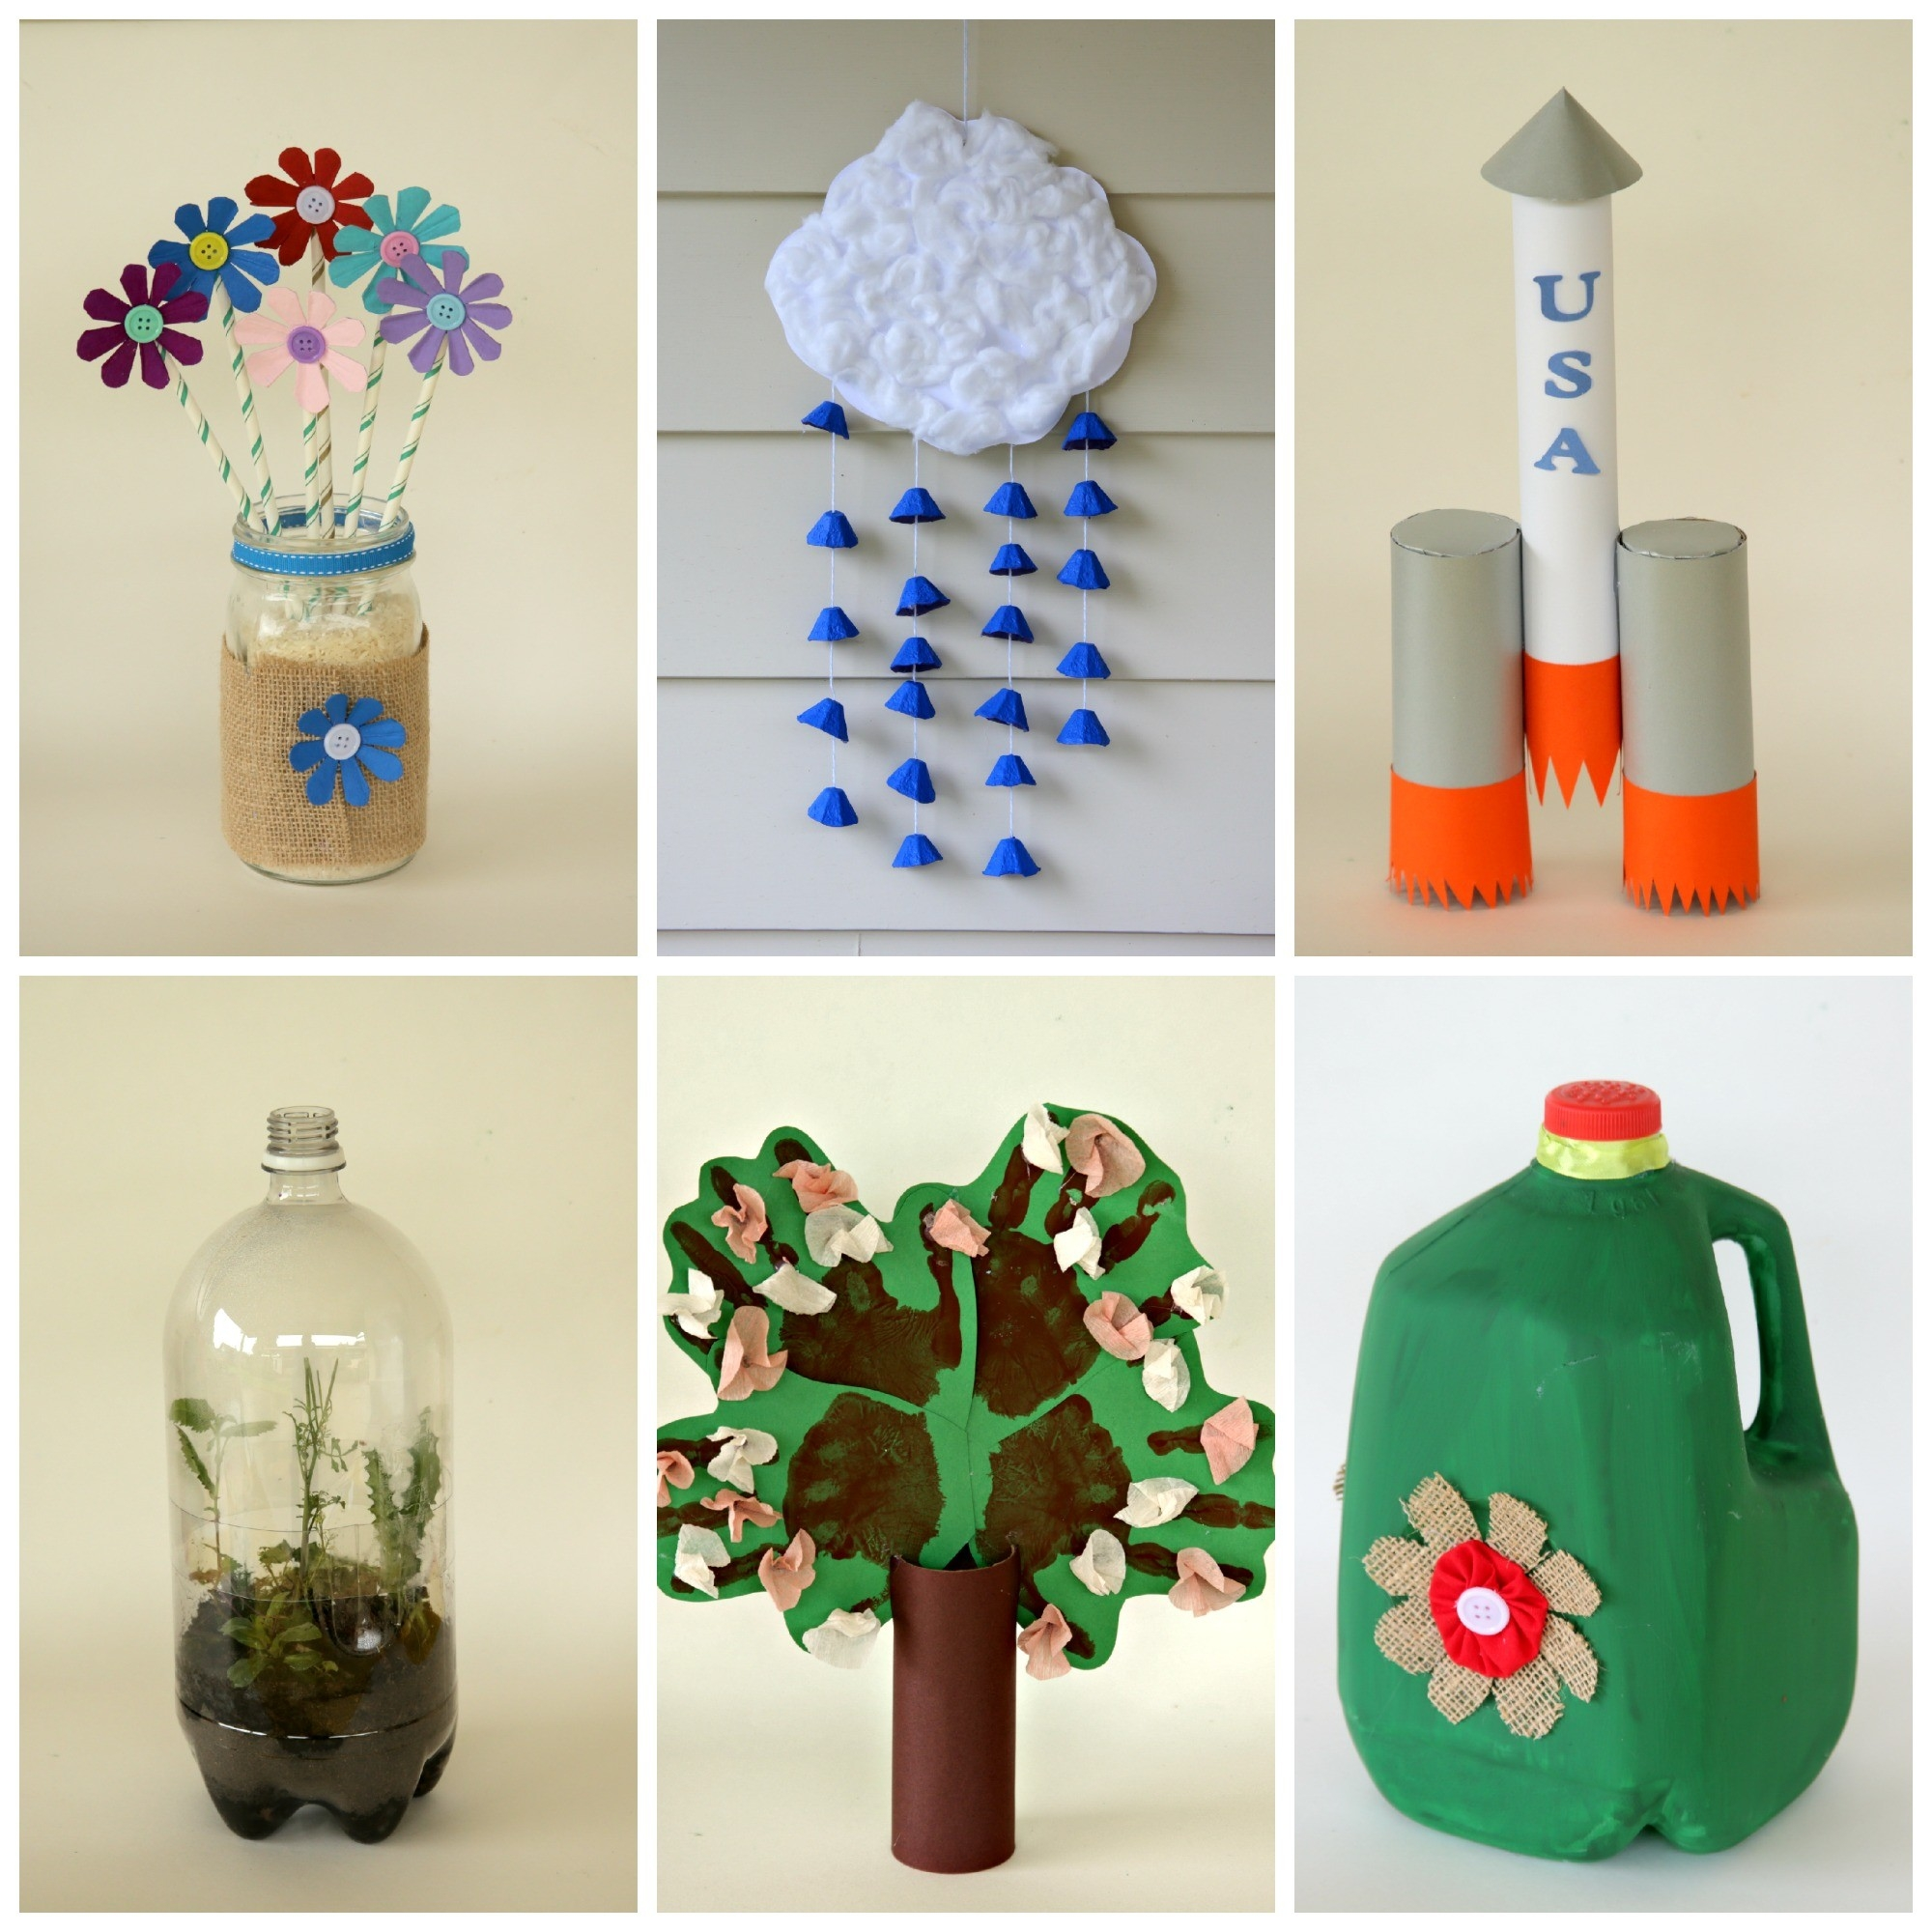 6 Earth Day Crafts From Recycled Materials · Kix Cereal intended for Art And Craft Ideas For Kids Using Recycled Materials 27670